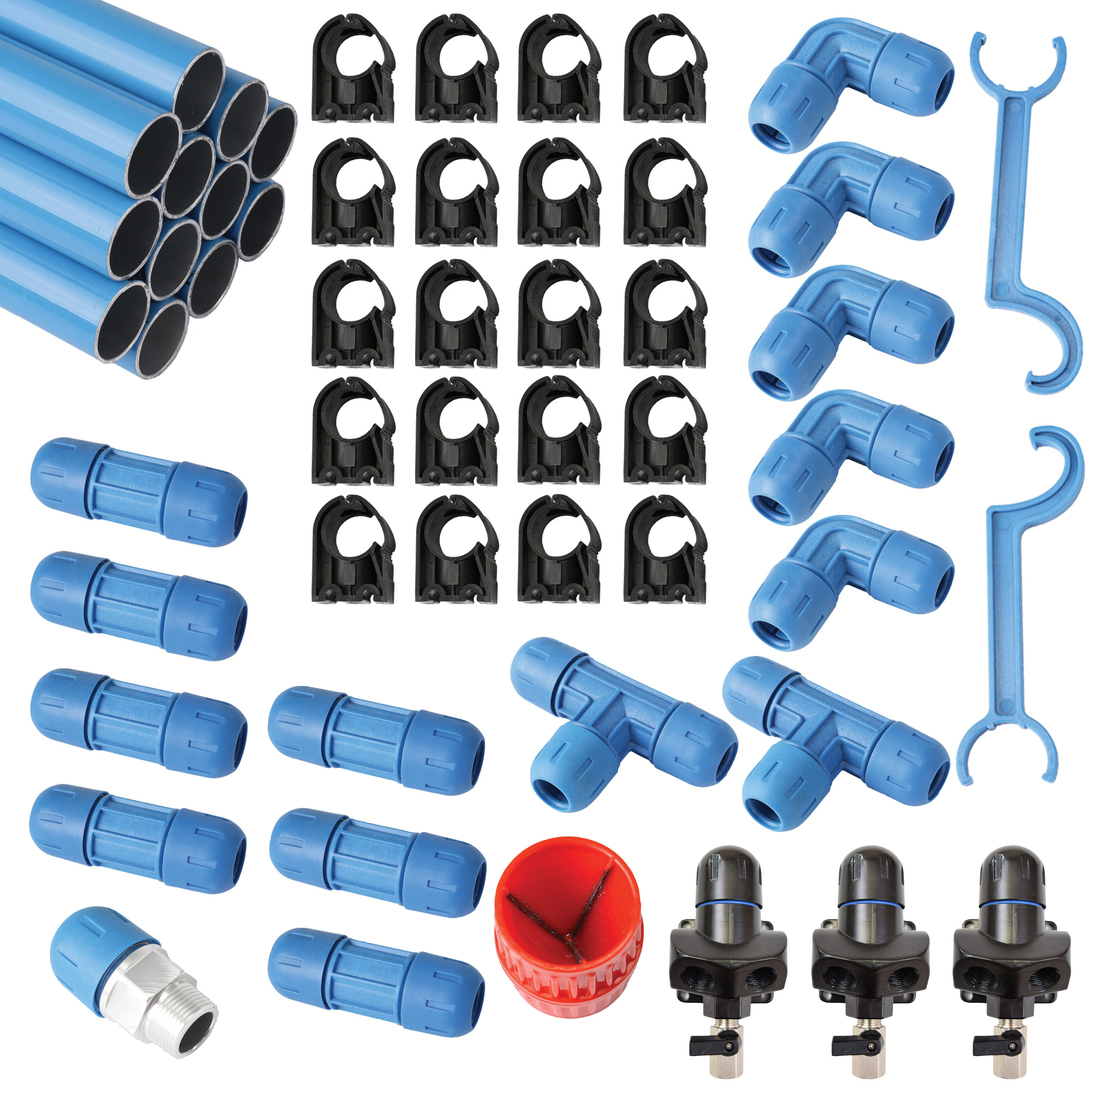 Compressed Air Piping >> Details About F28070 Fast Pipe 90 3 4 Compressed Air Line Aluminum Piping System Tubing Kit